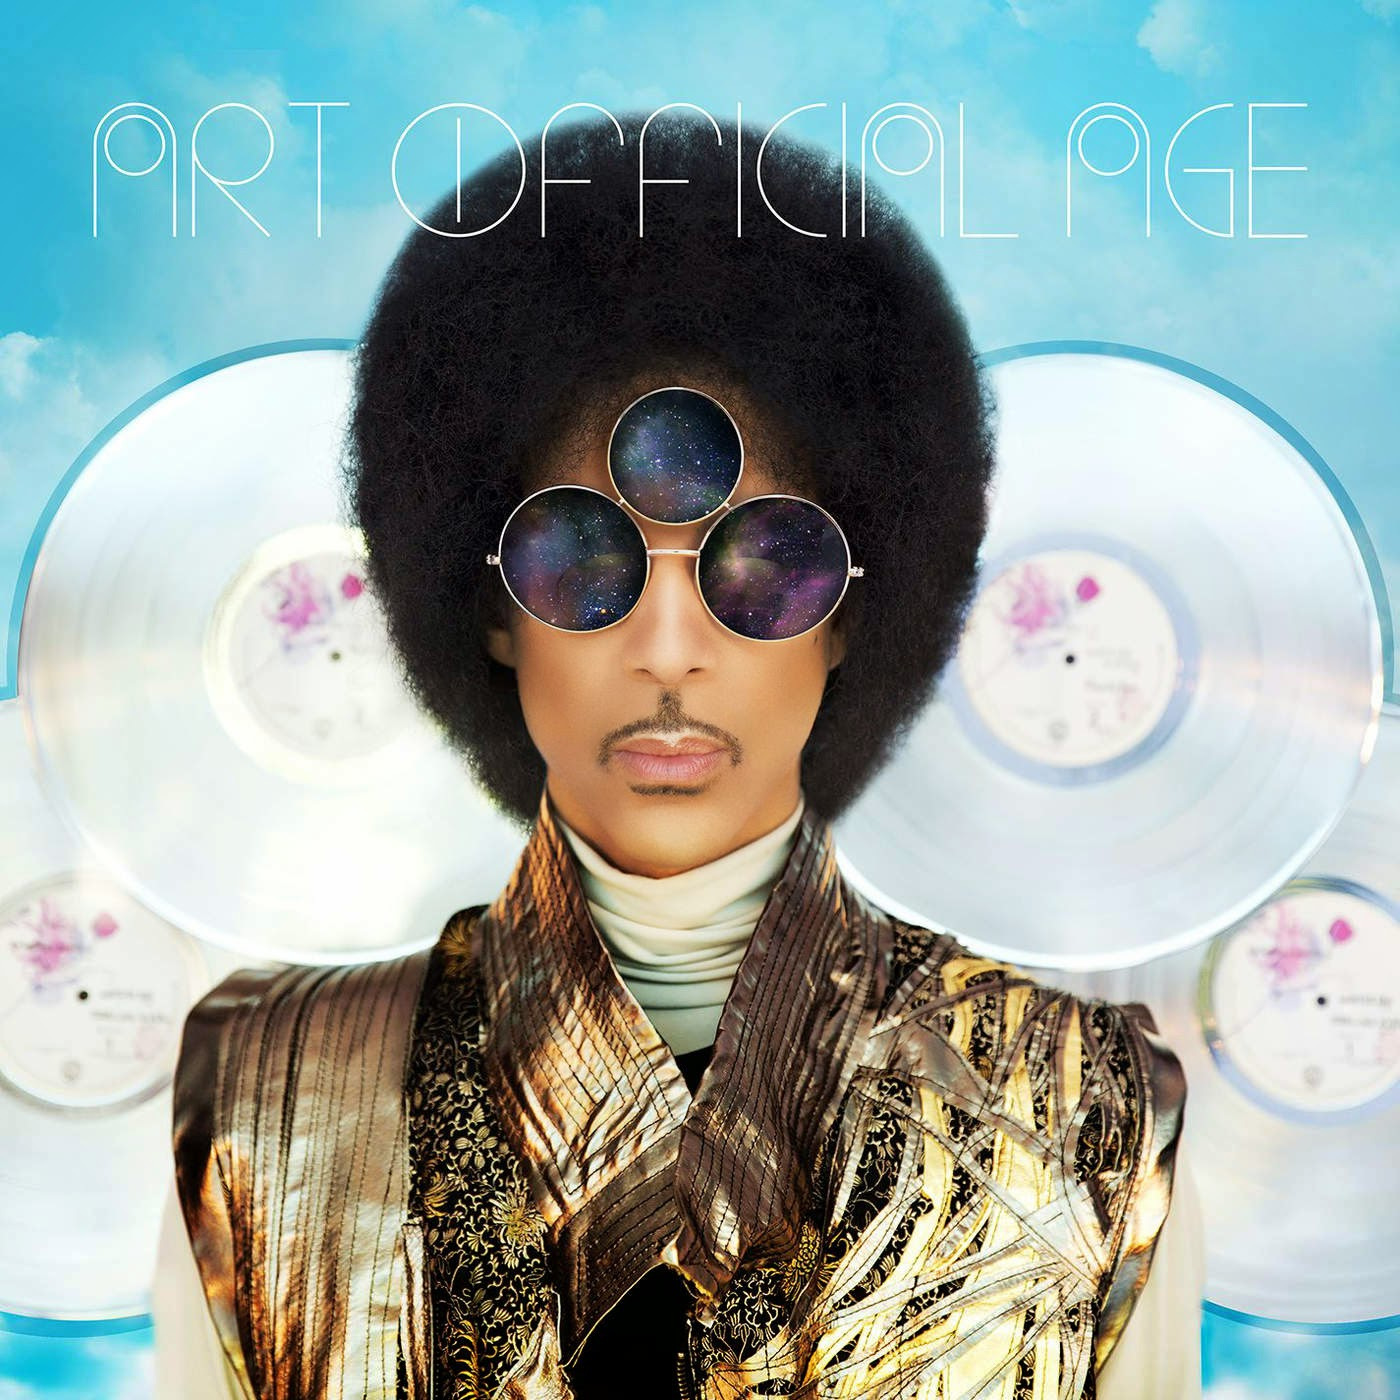 The Artist Prince Quotes. QuotesGram